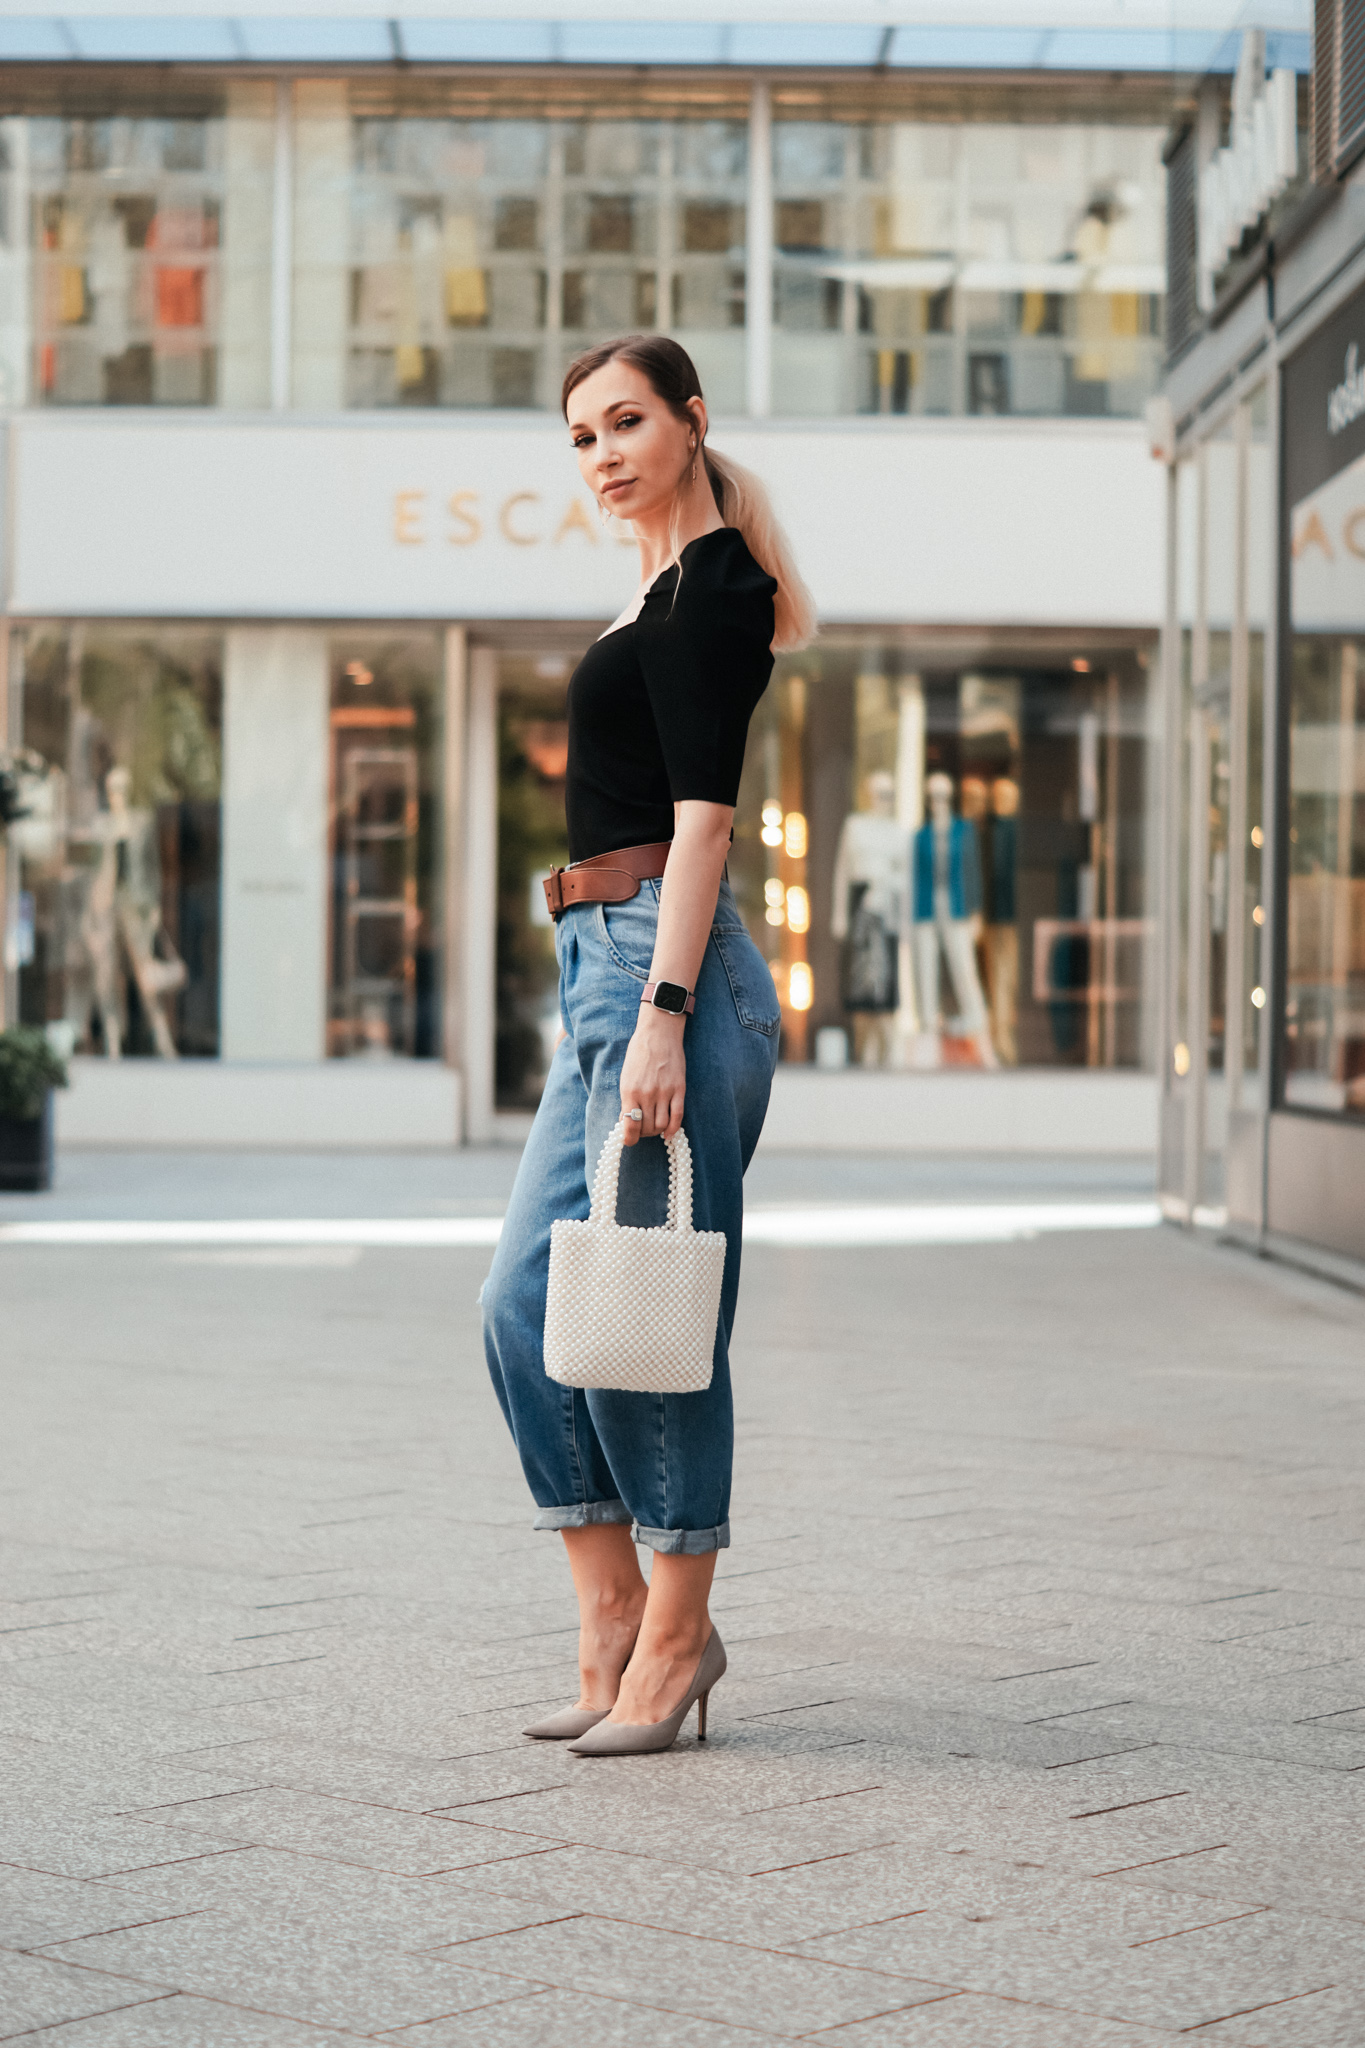 dbkstylez_slouchy_jeans_streetstyle_outfit_inspiration_trends